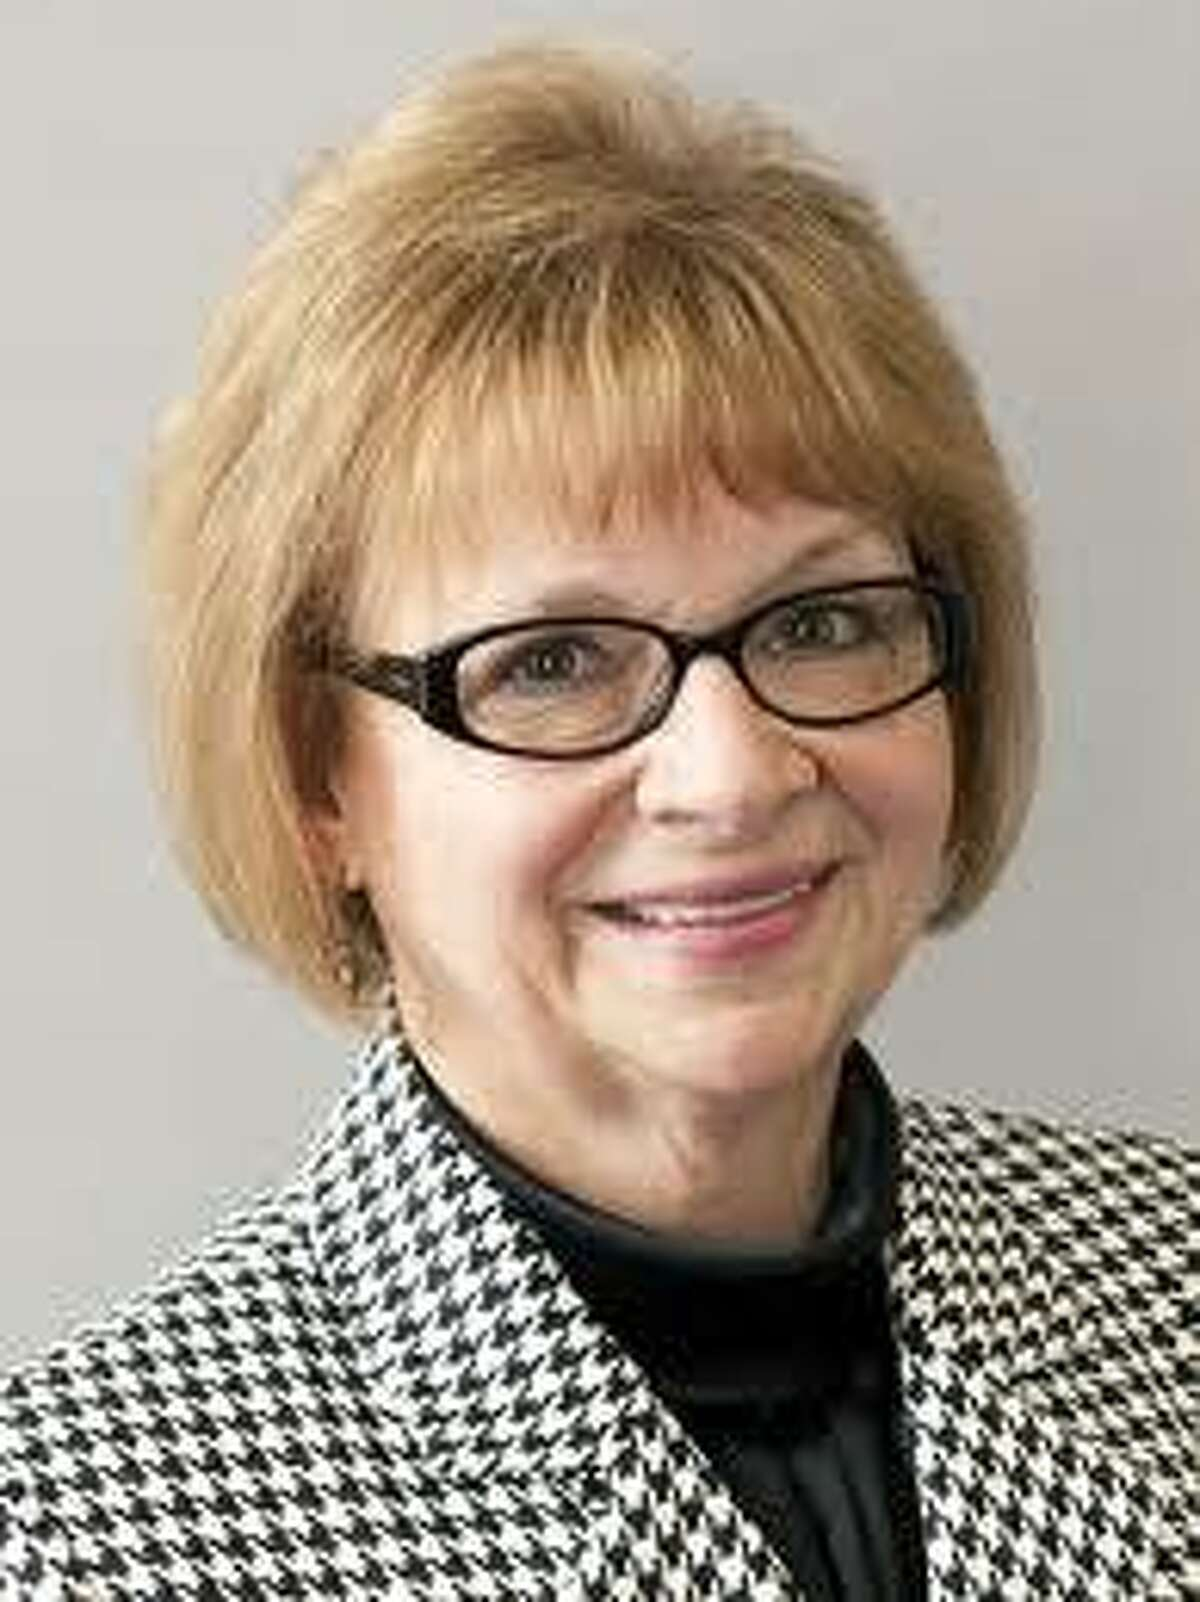 Retiring State Rep. Linda Gentile, R-Ansonia, was instrumental in finalizing state approval for a $389,000 grant to make Ansonia's downtown safer and friendlier to pedestrian and bicyclists.